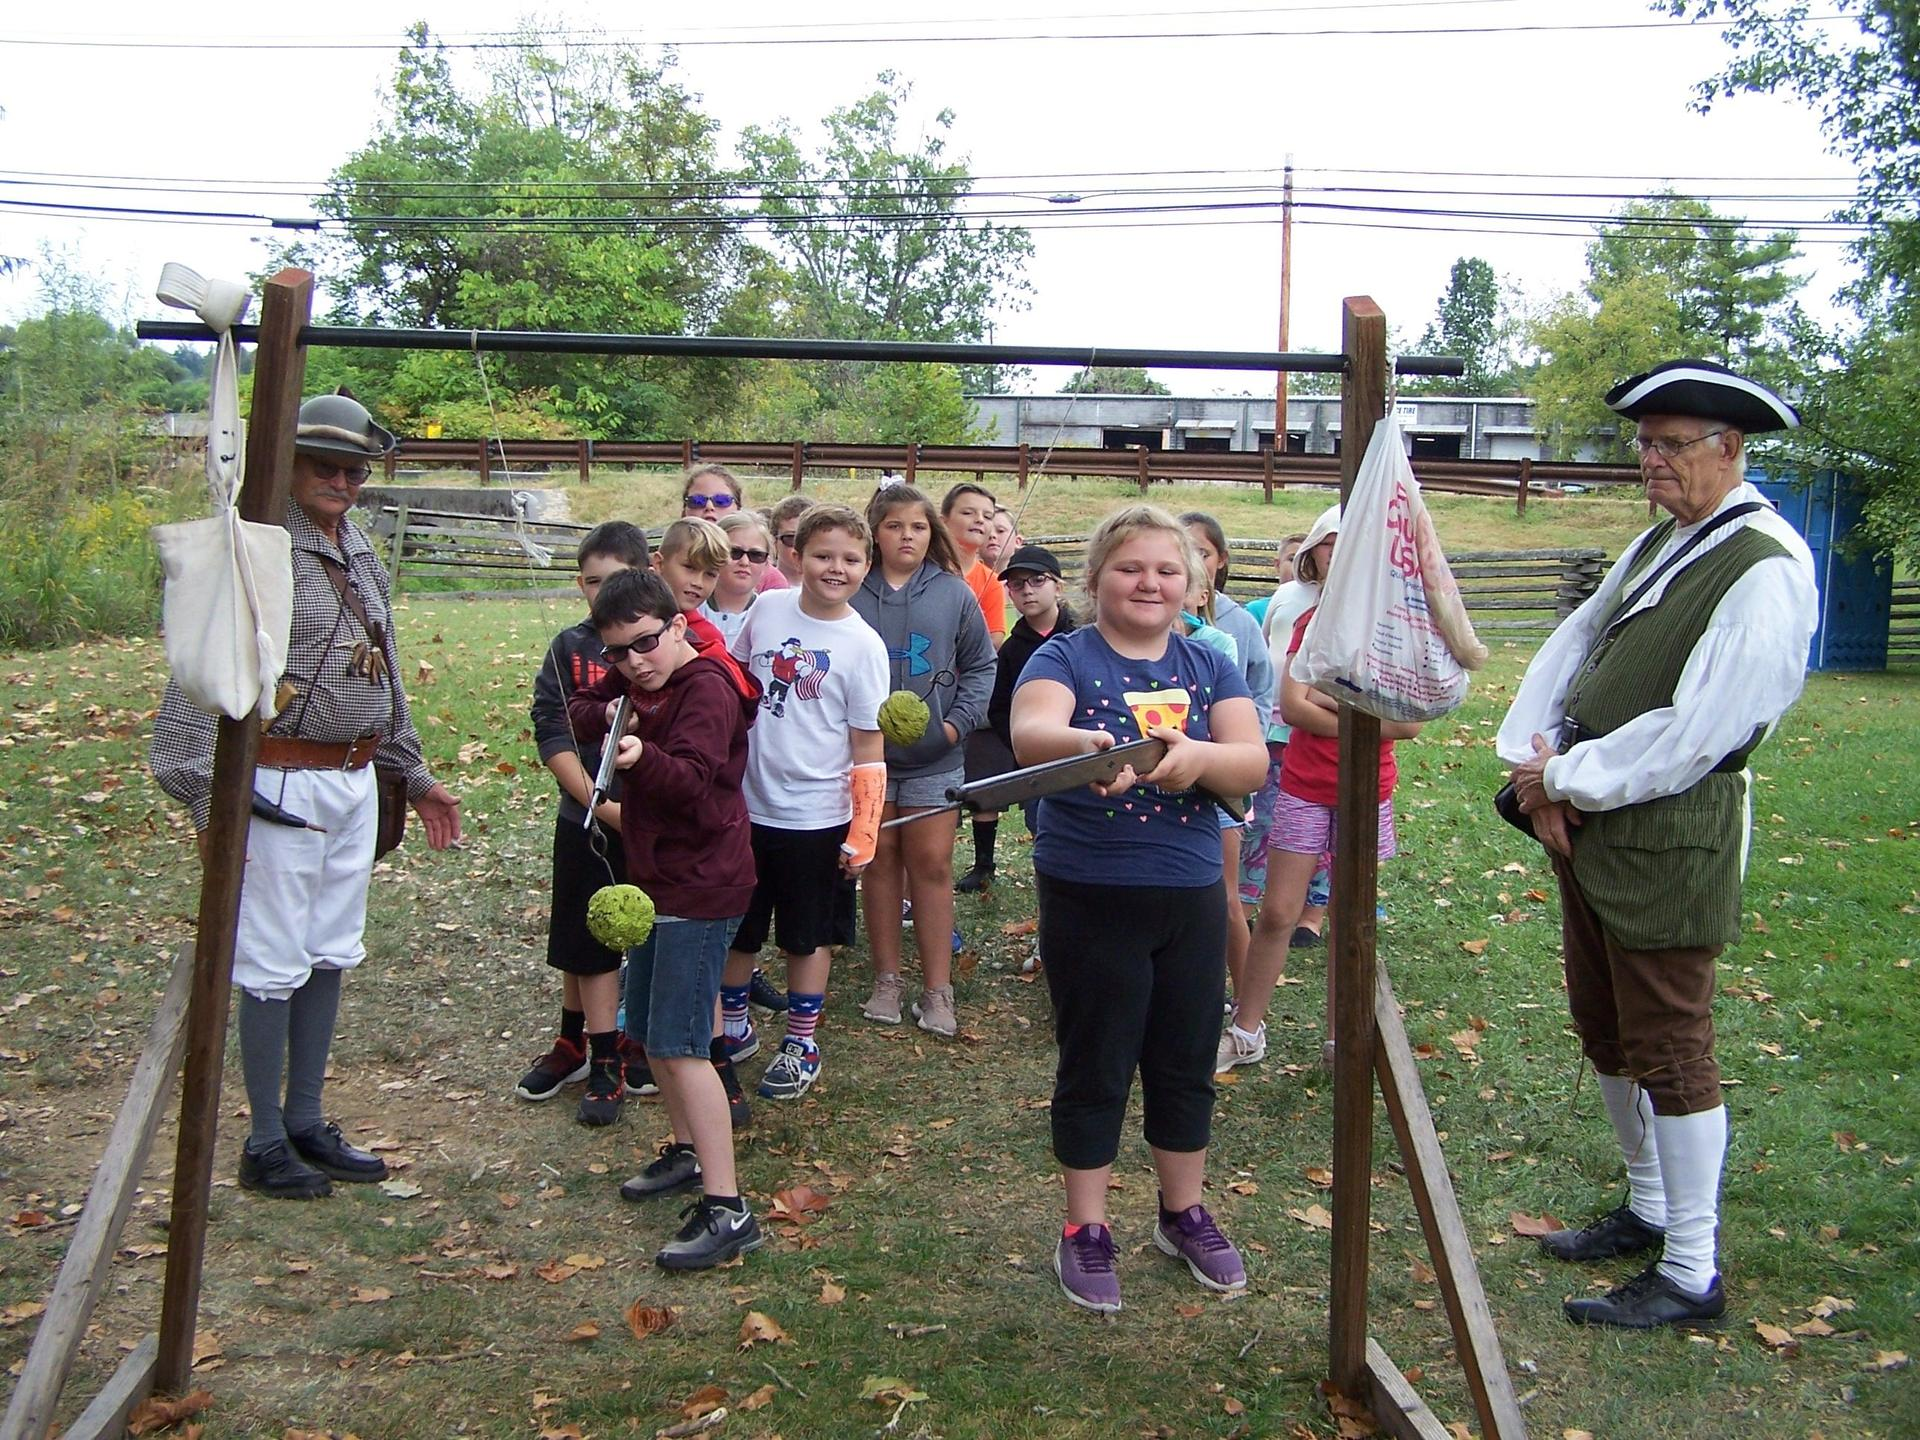 Students Mustering Grounds in Abingdon learning about Revolutionary War weapons